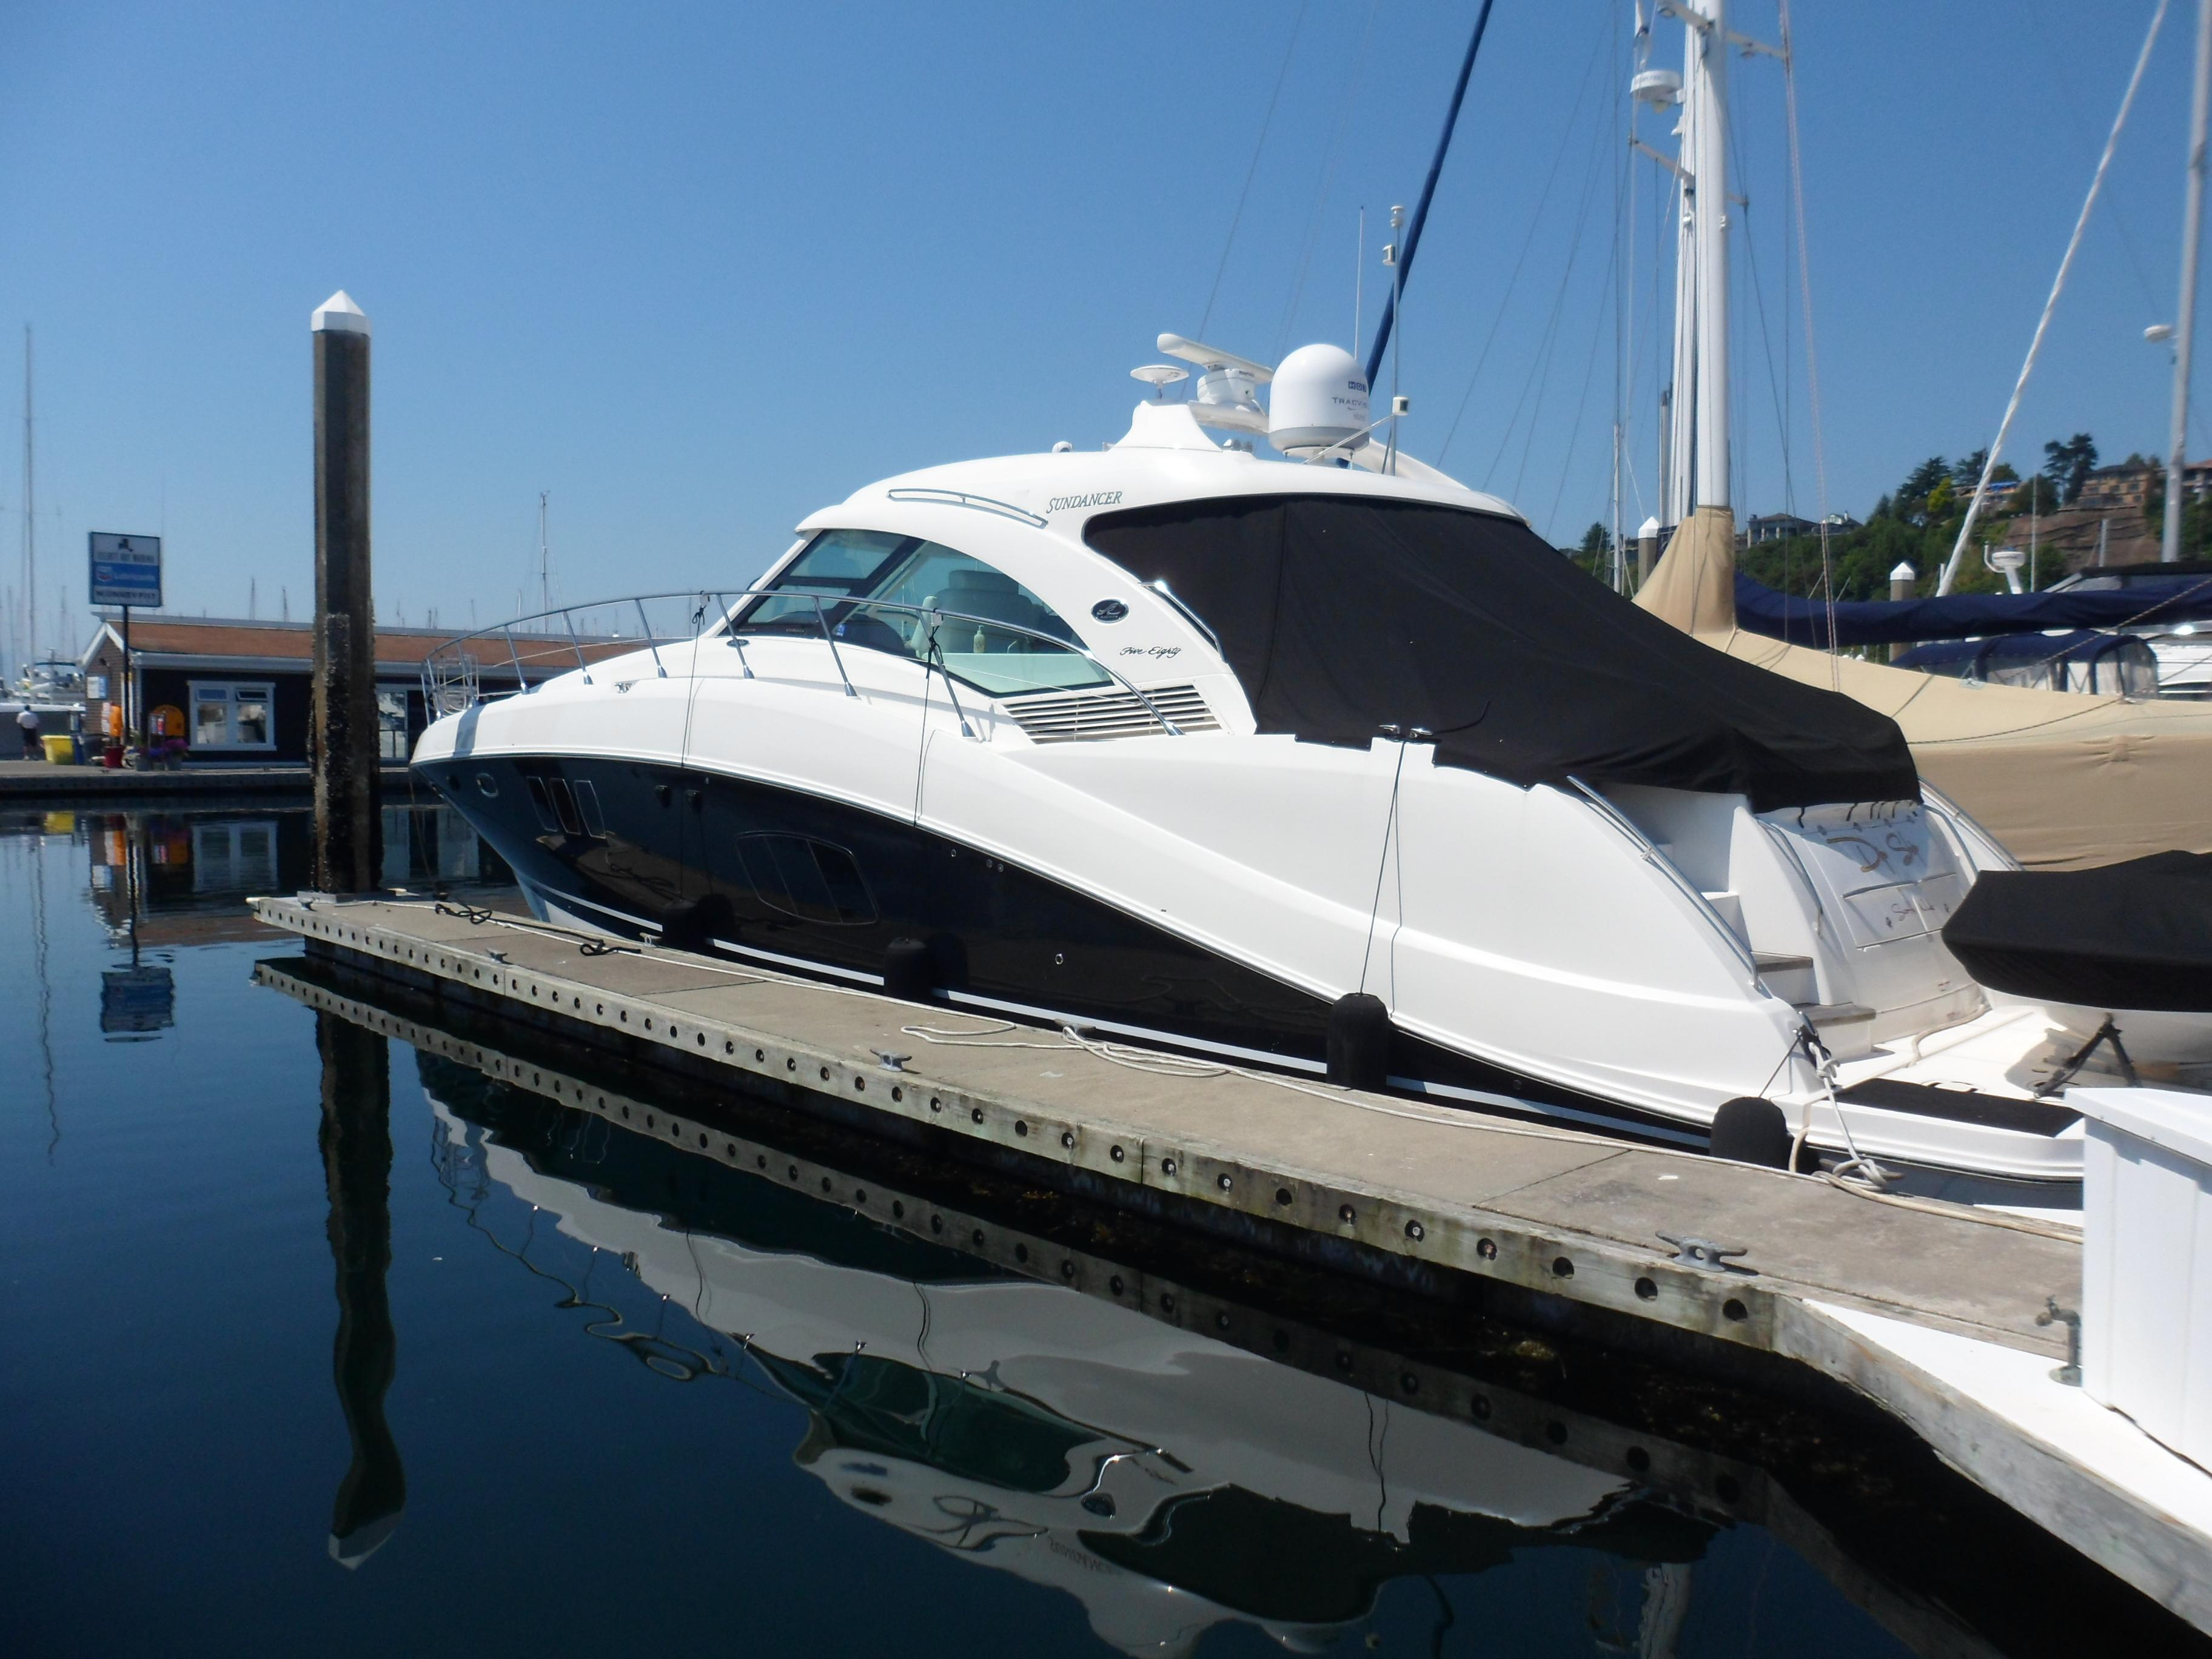 55 foot boats for sale in wa boat listings for Boat motor parts near me